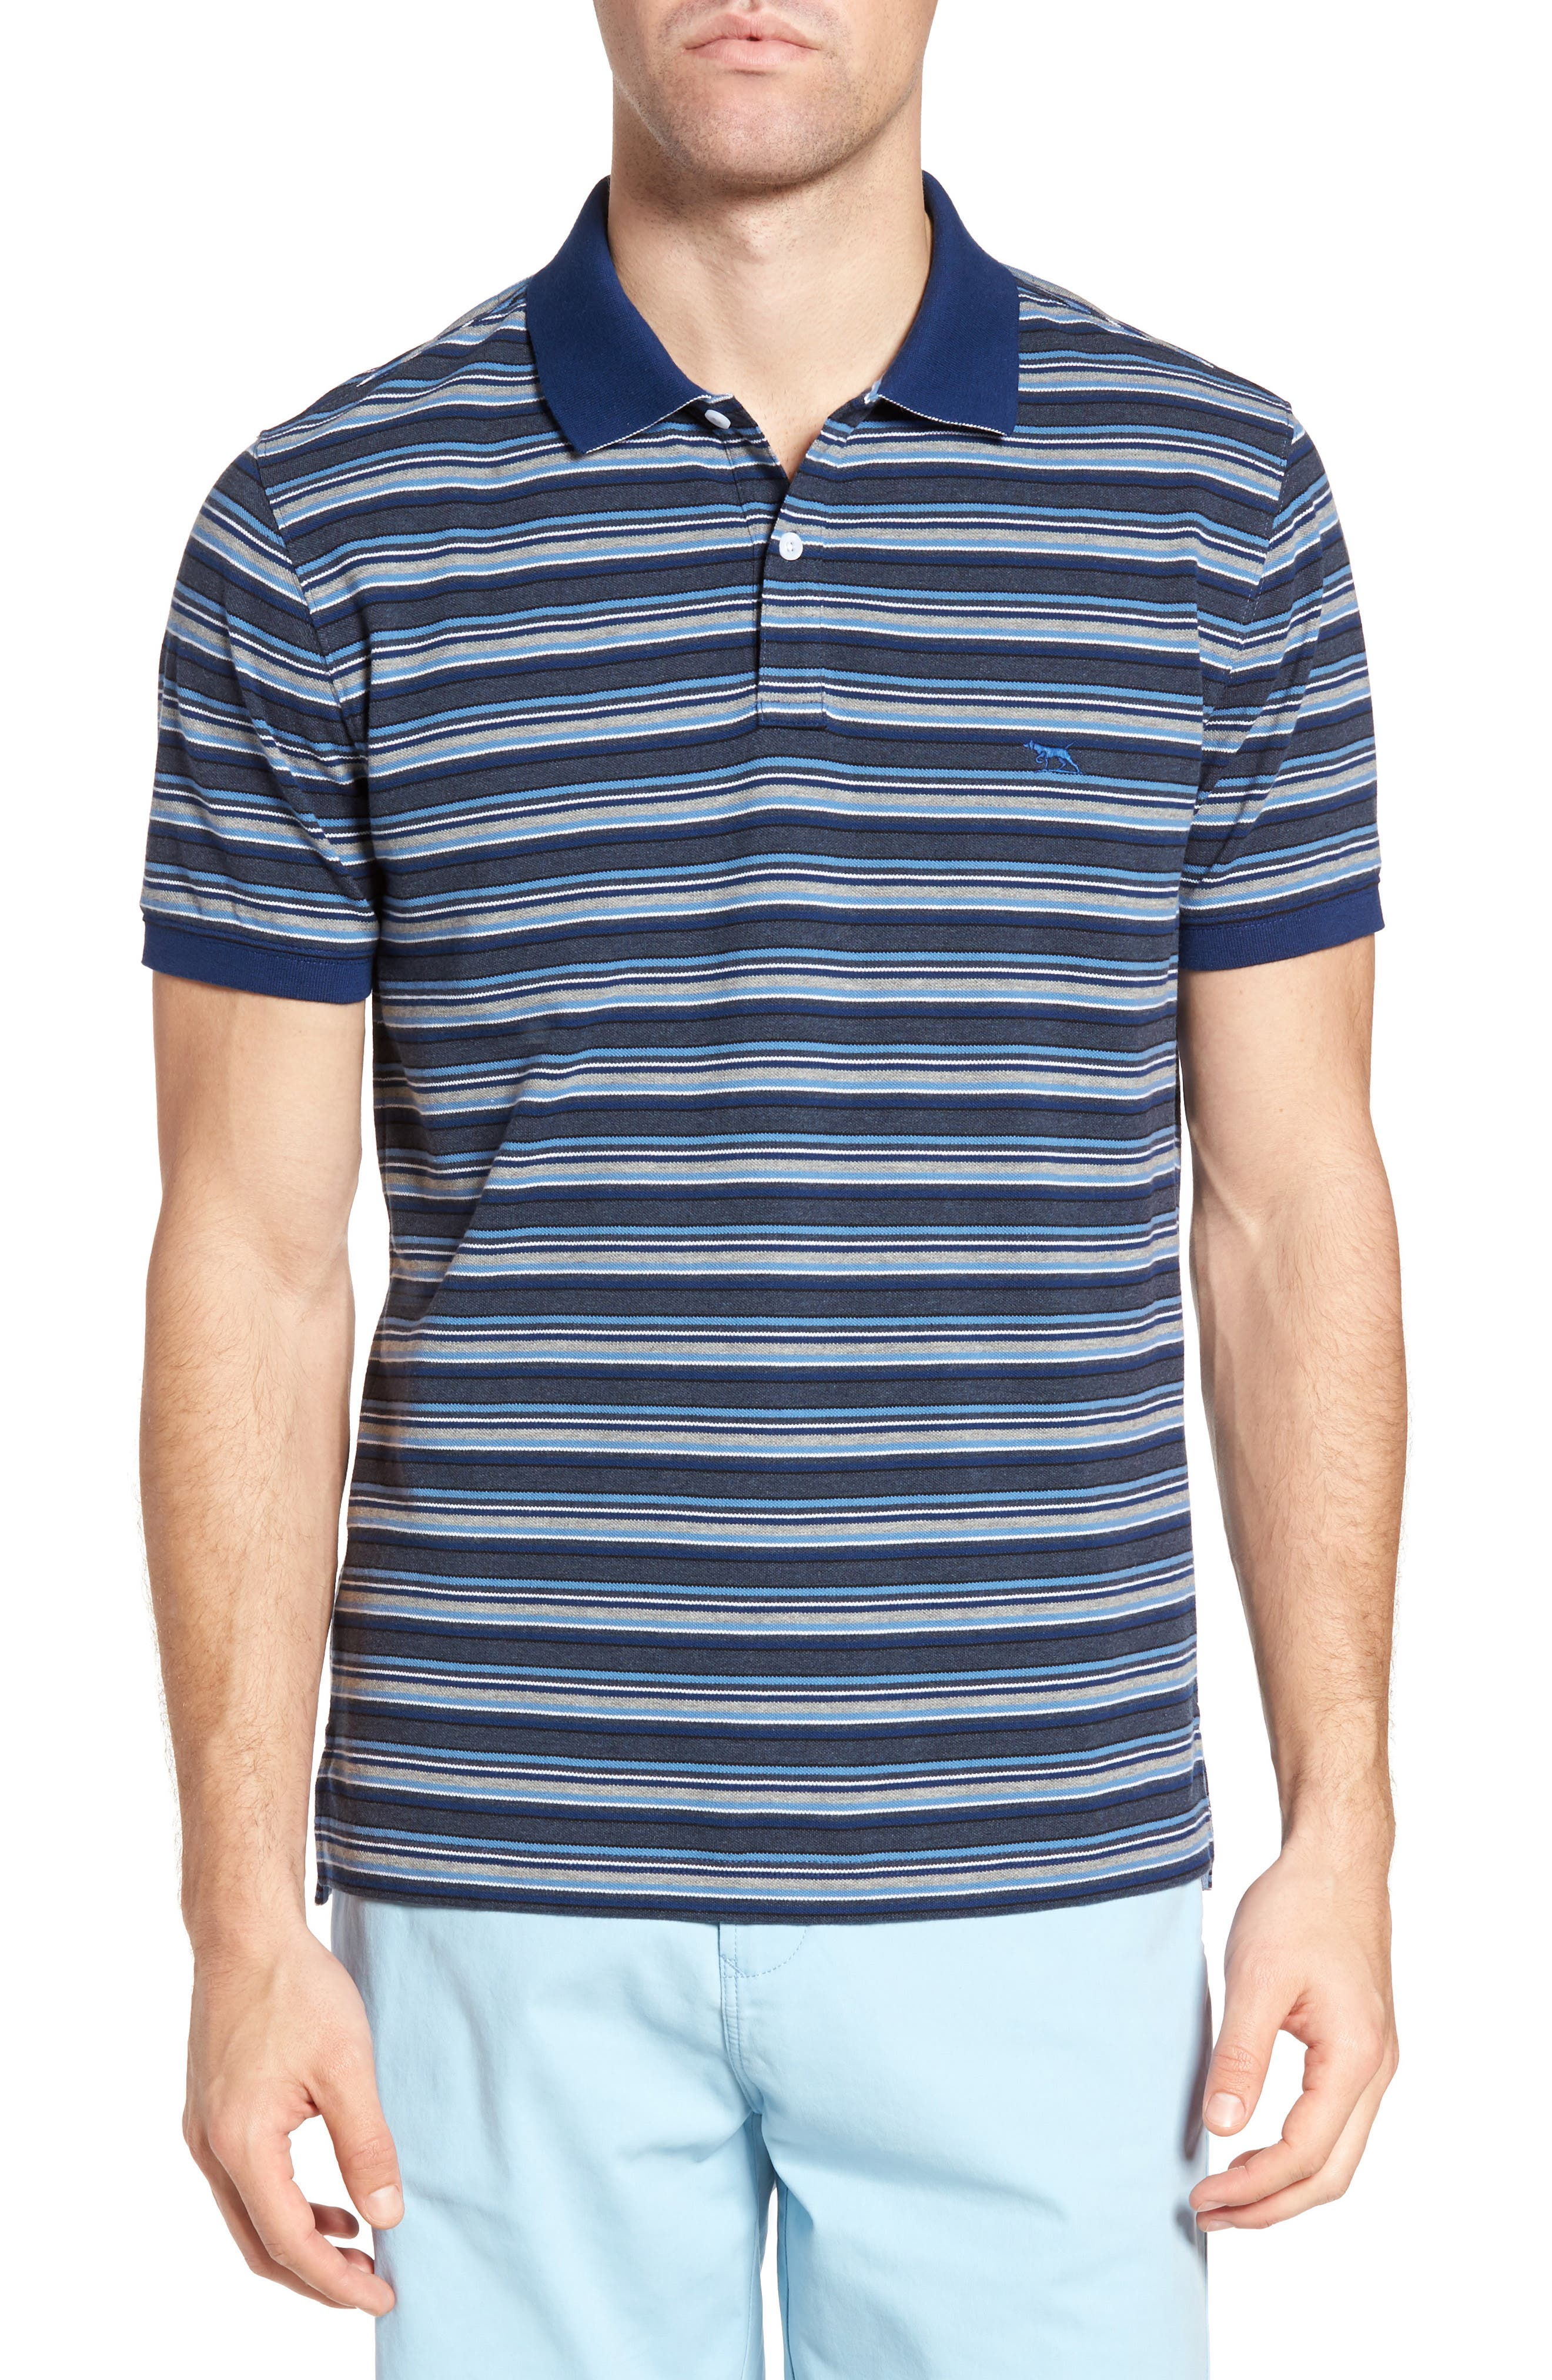 Rodd & Gunn MacDonald Downs Sports Fit Stripe Piqué Polo